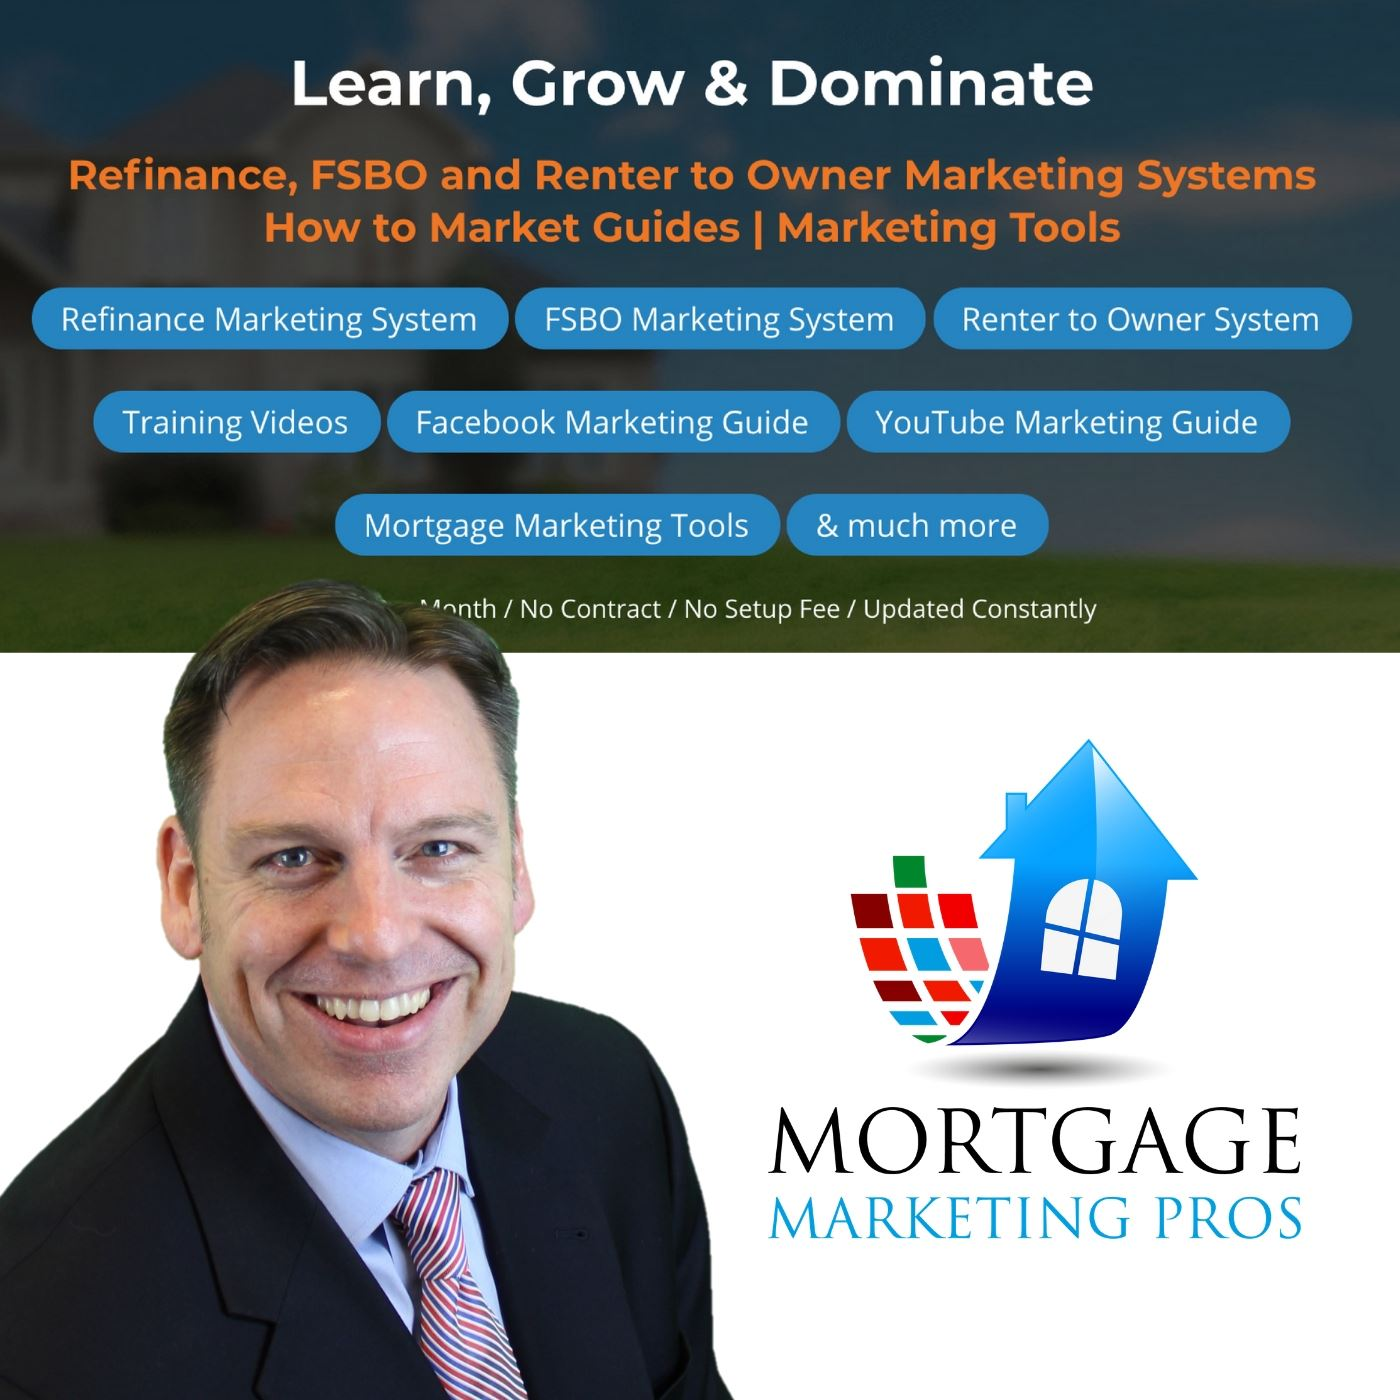 Mortgage Marketing Pros